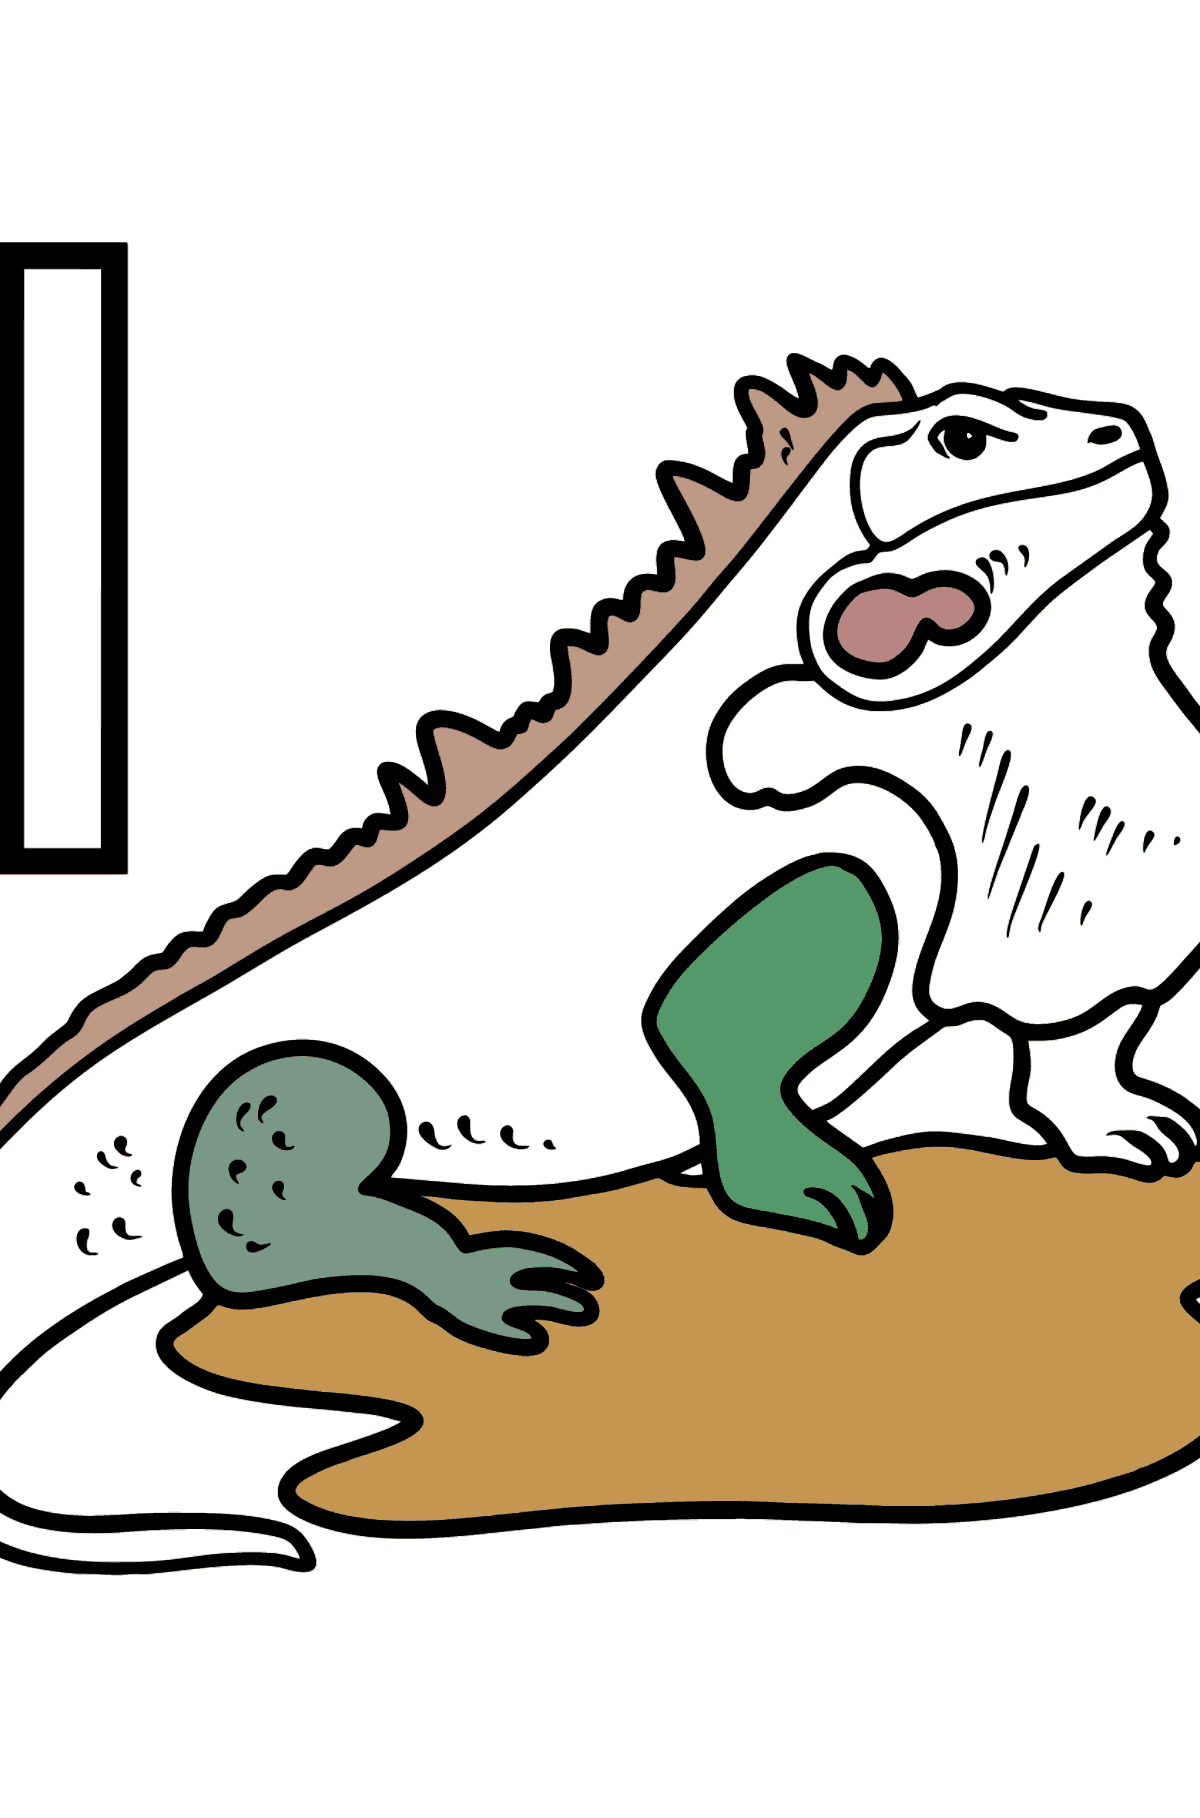 Portuguese Letter I coloring pages - IGUANA - Coloring Pages for Kids